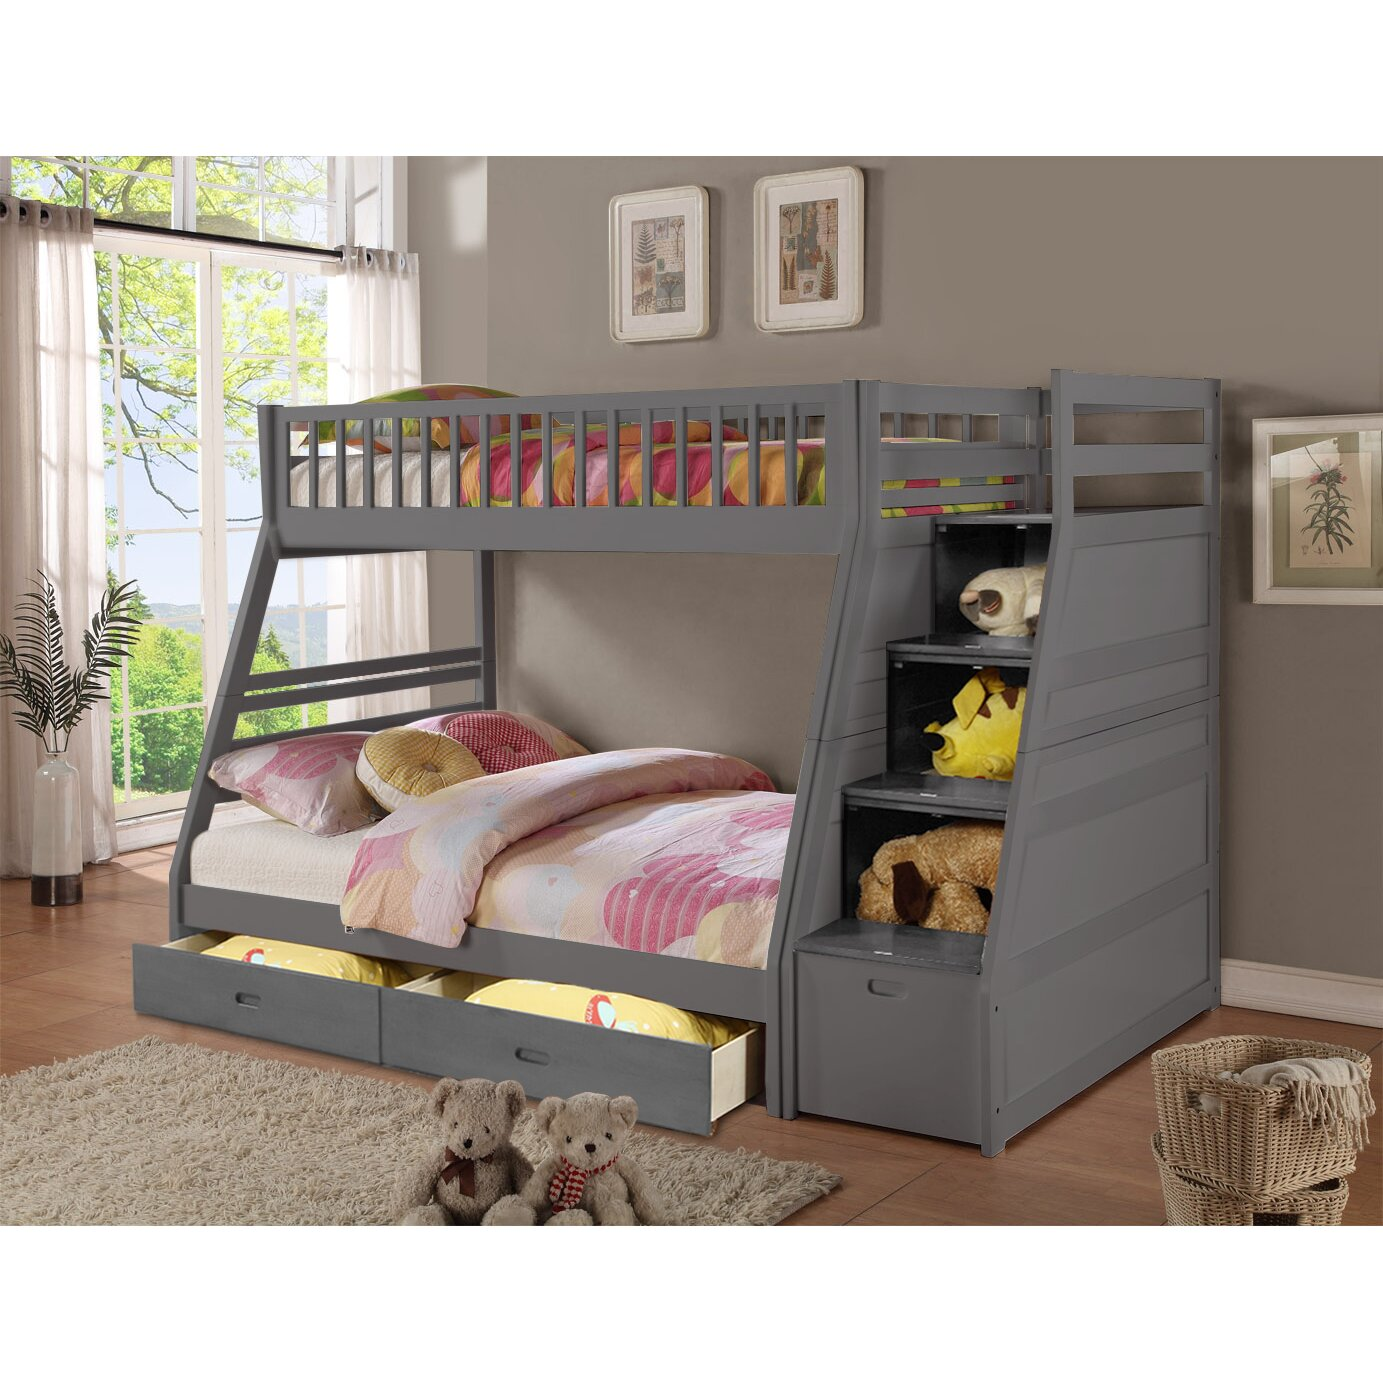 Wildon Home ® Walter Twin Over Full Bunk Bed with Drawers  Wayfair